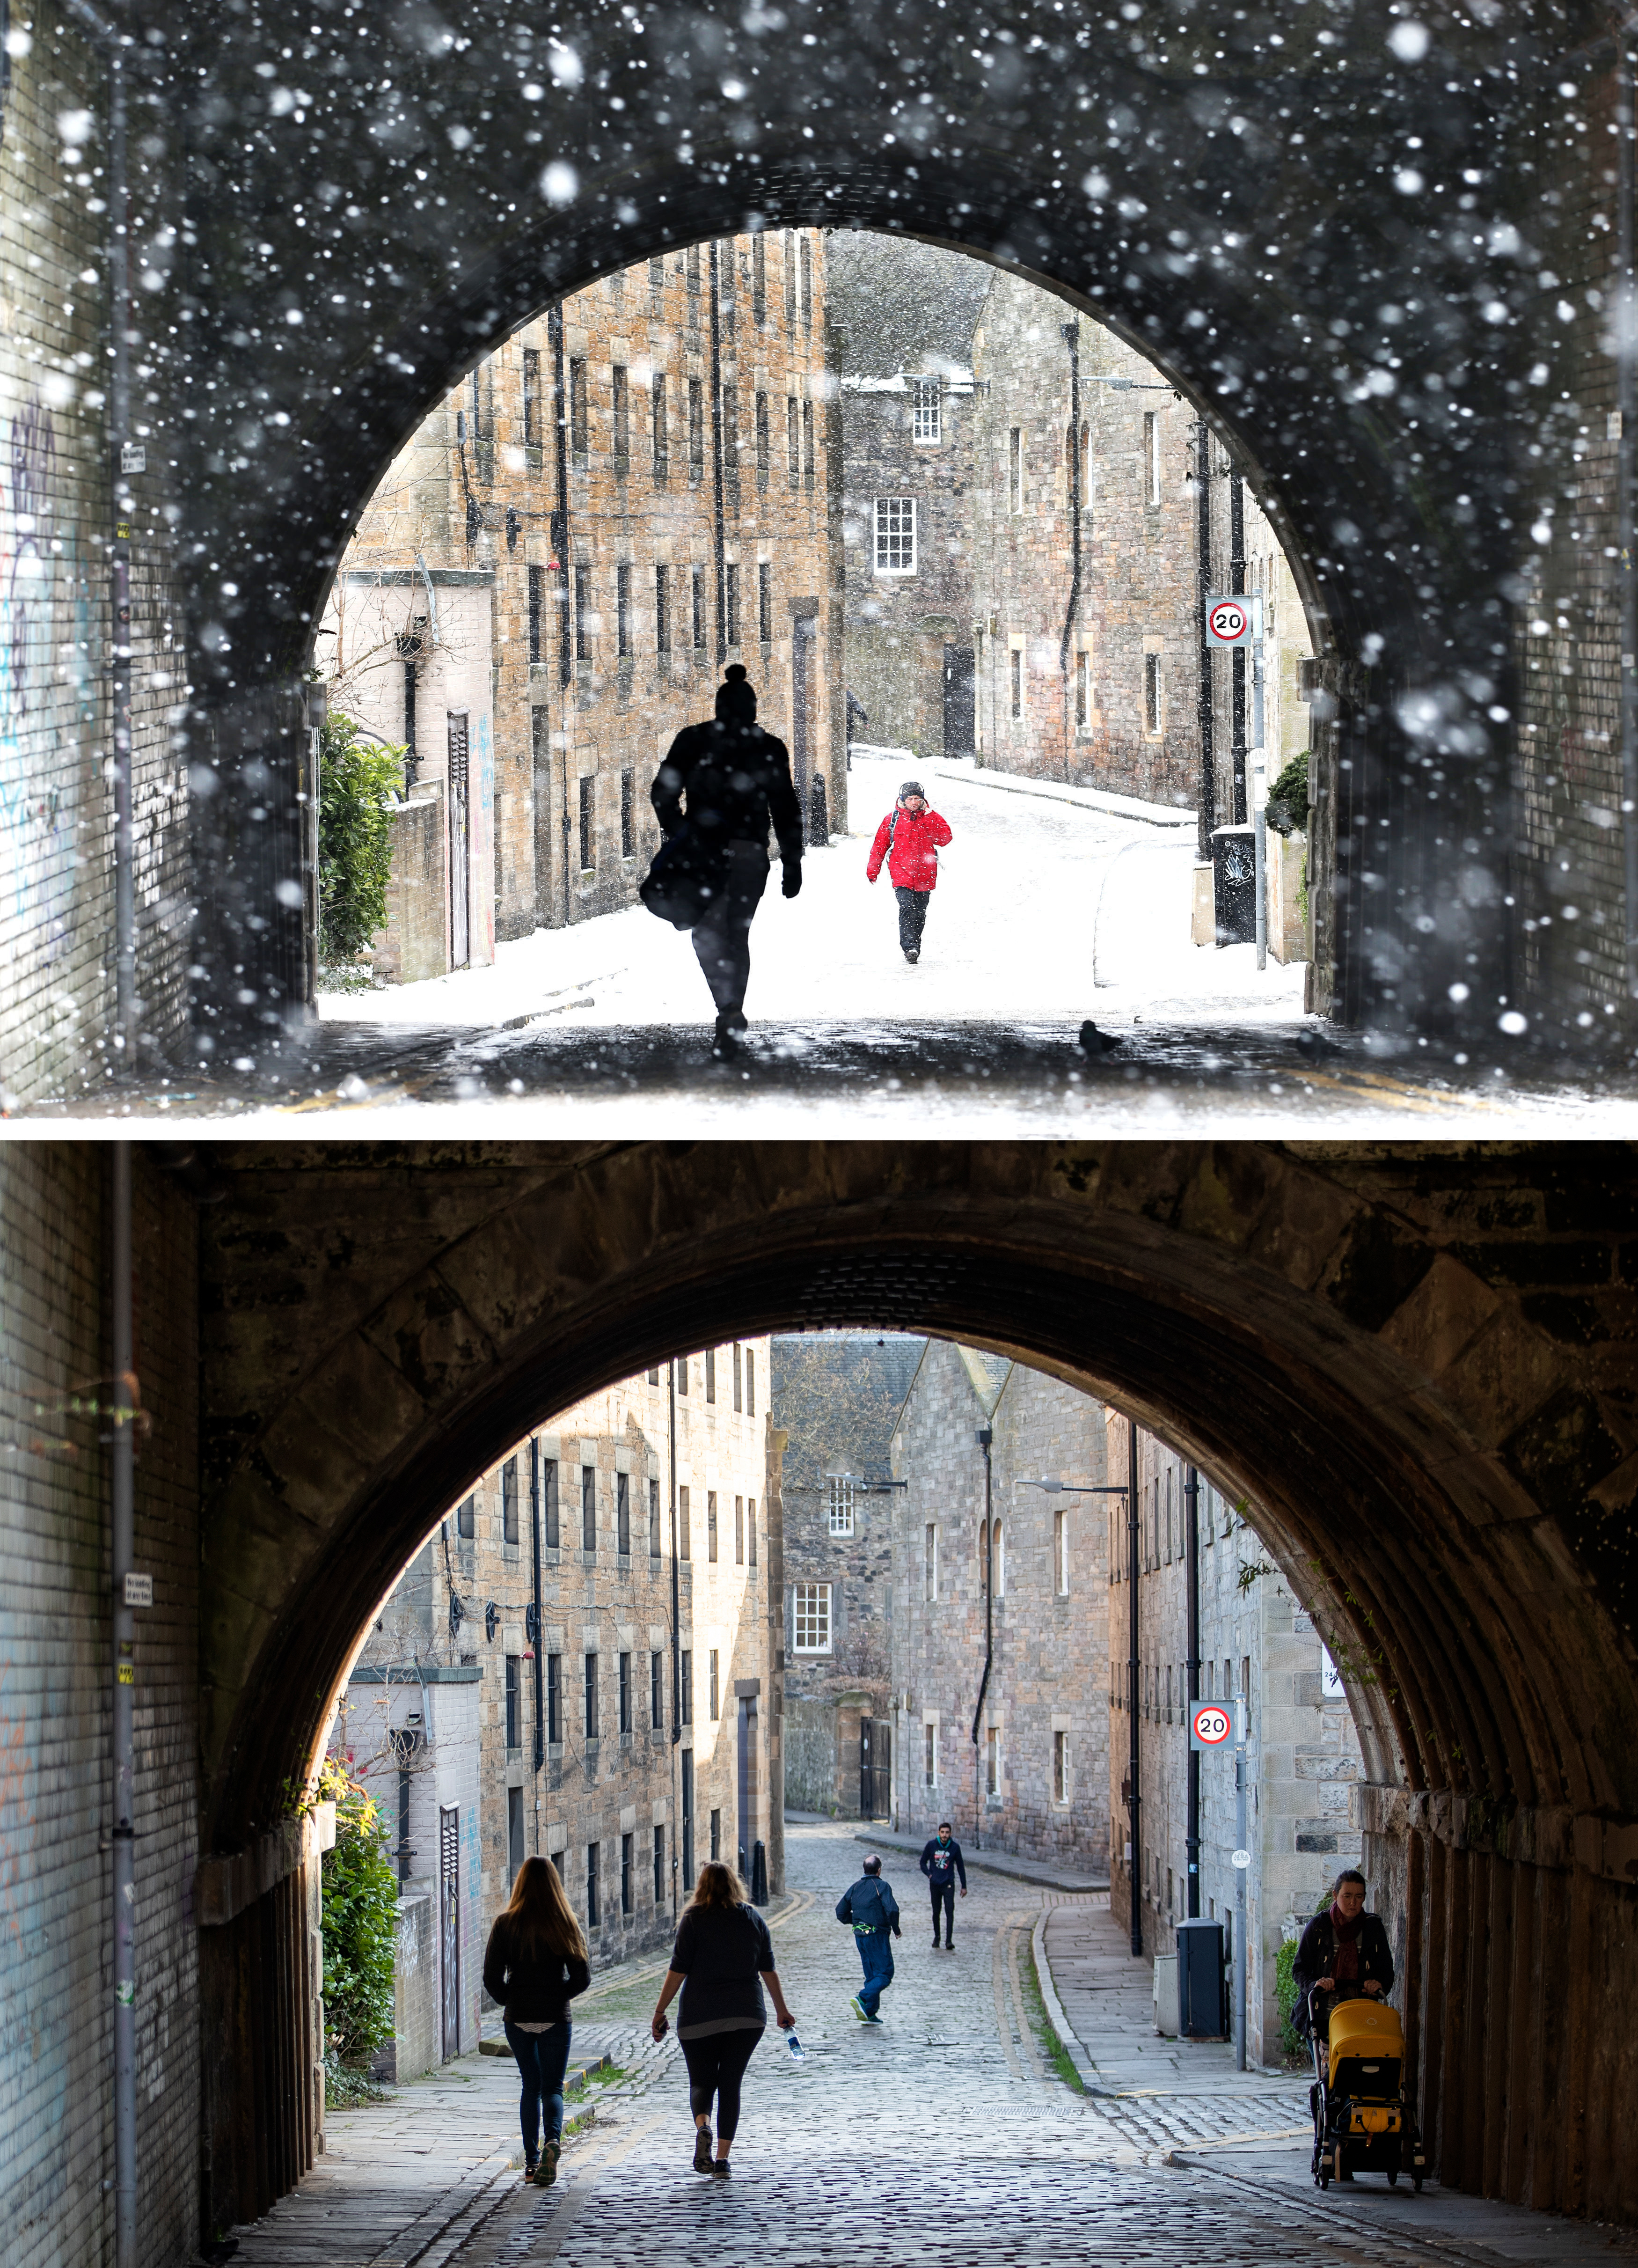 Composite photos of the view through the Croft An Righ in Holyrood, Edinburgh on 28/02/18 (top), during the Beast from the East, and the same view on 26/02/19, as Britain experienced record-breaking temperatures after Tuesday became the warmest winter day on record